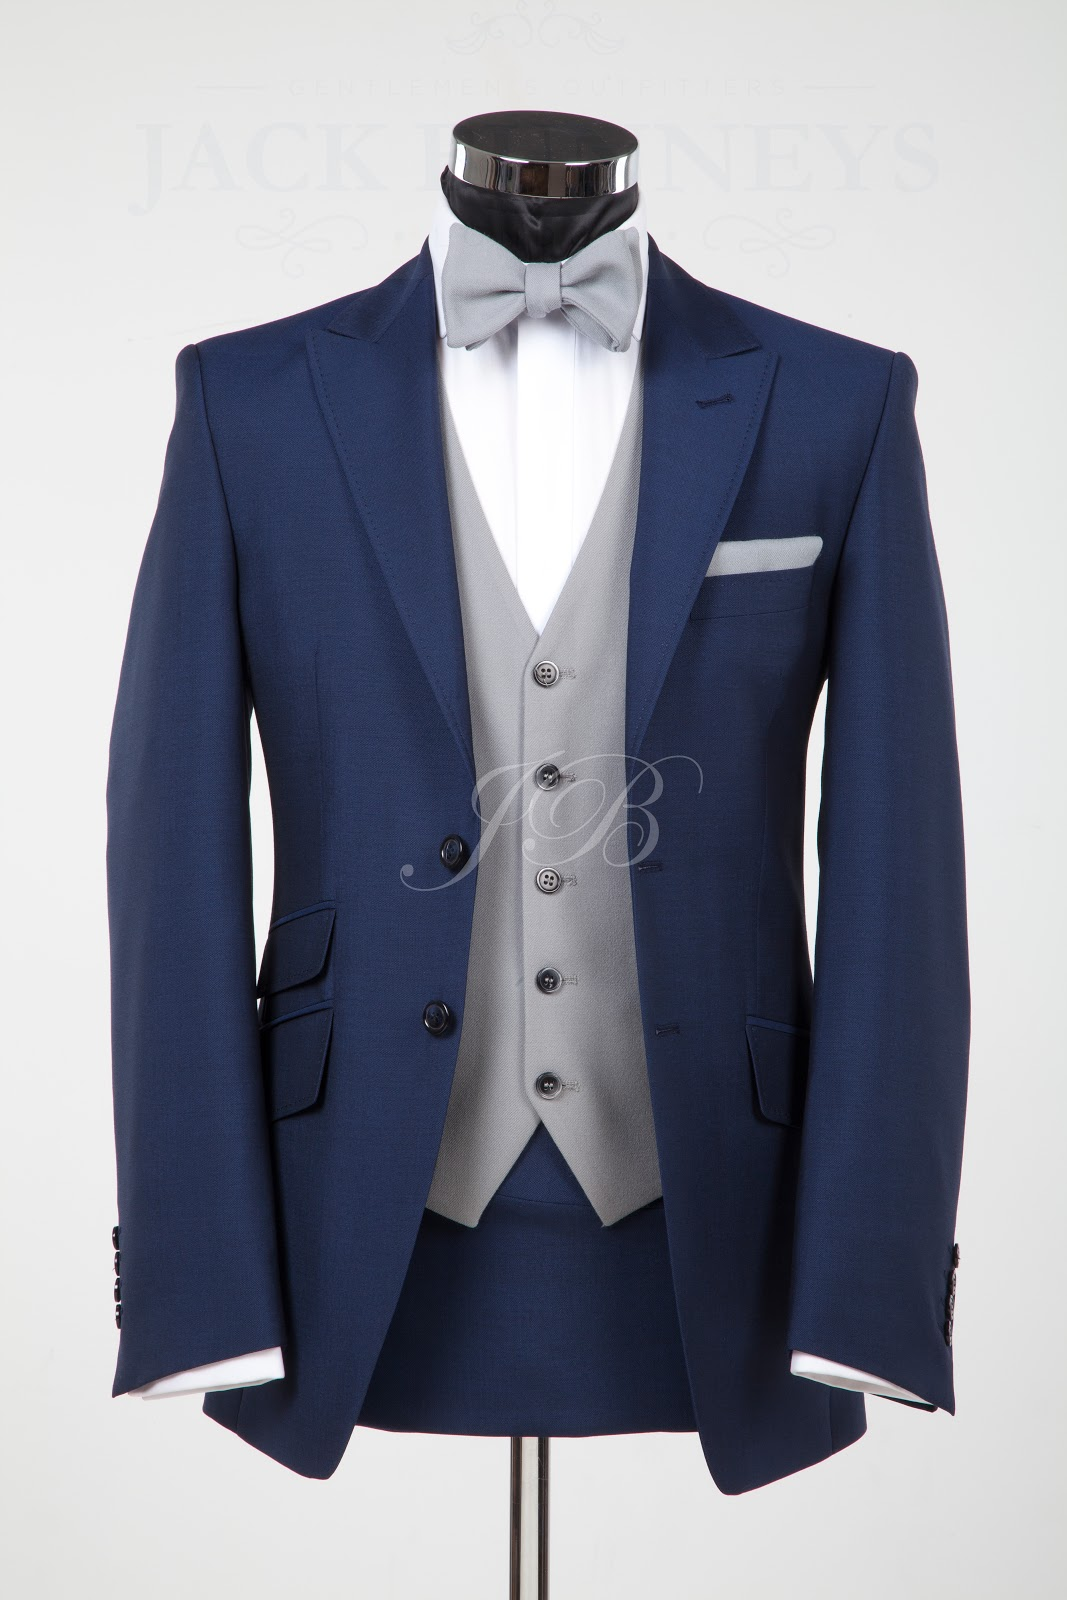 the bunney blog wedding suits with bowties